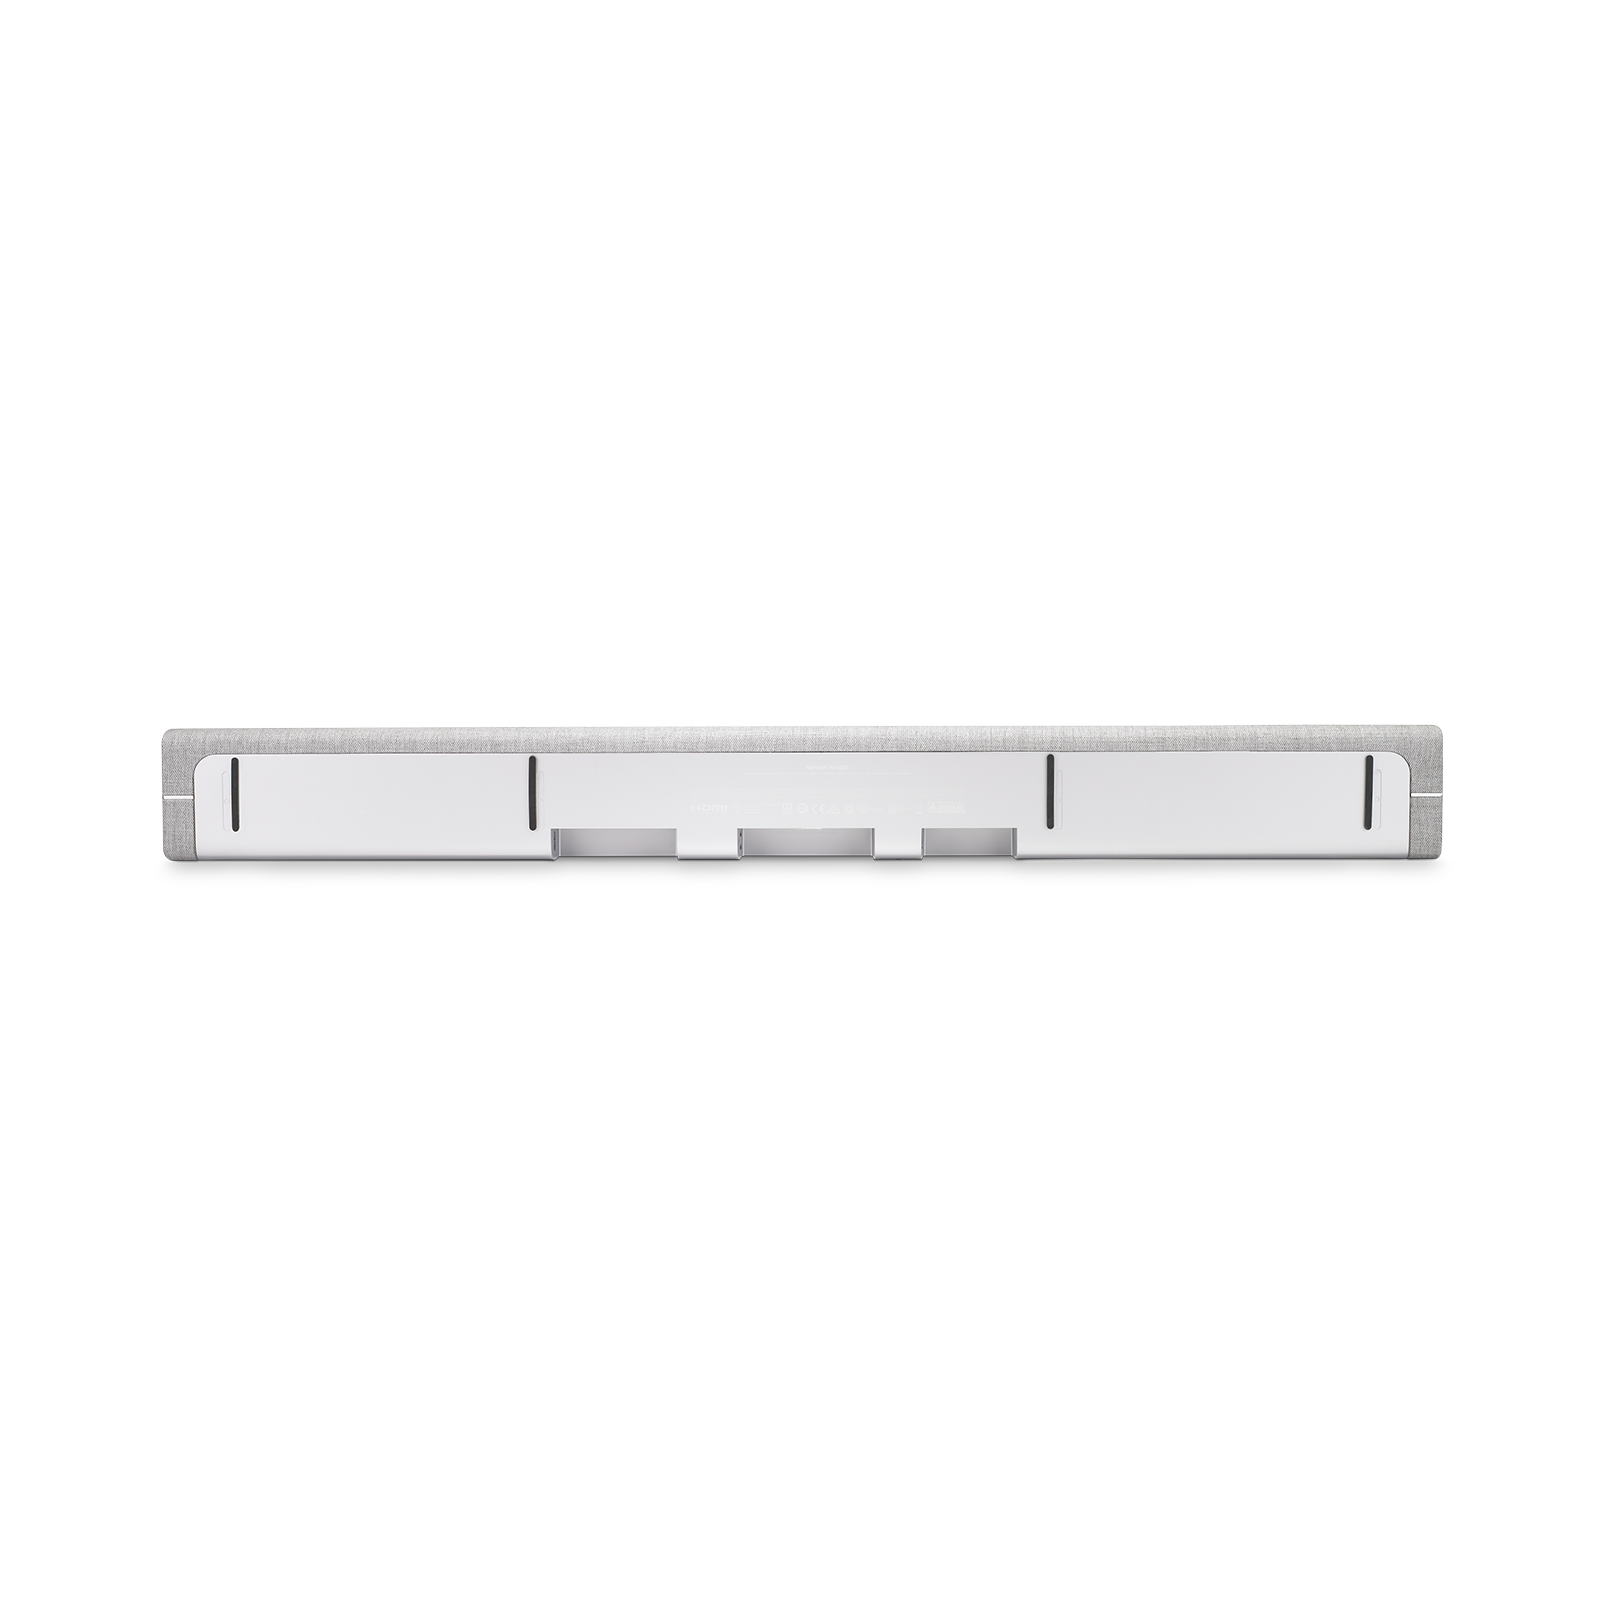 Harman Kardon Citation Bar - Grey - The smartest soundbar for movies and music - Detailshot 2